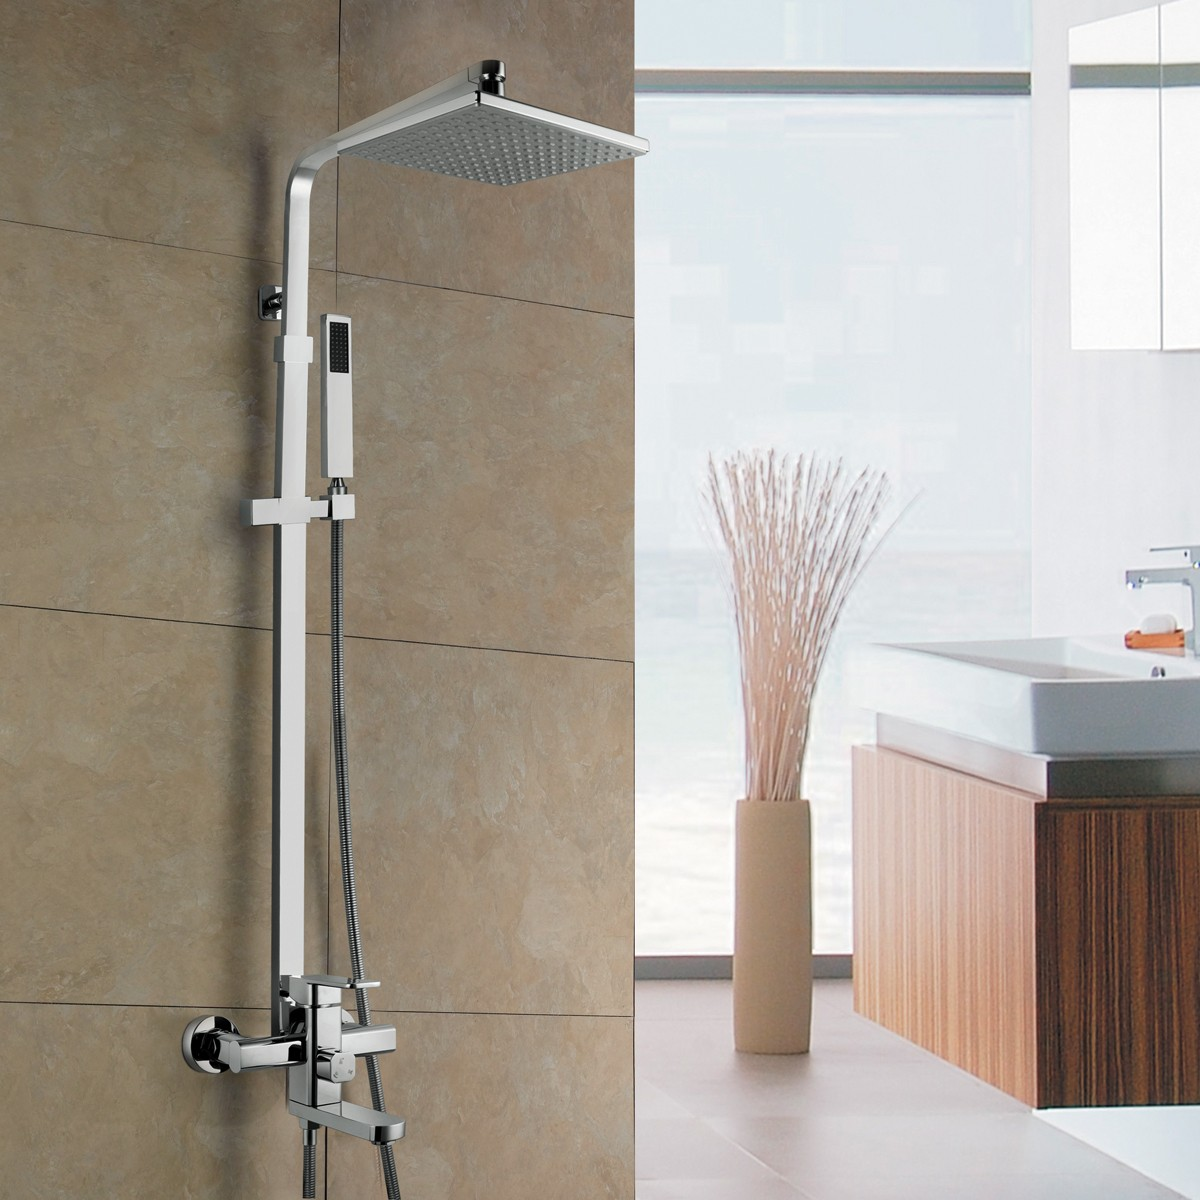 How To Add Rainfall Effect Your Bathroom Rain Shower Head With Handheld Sprayer